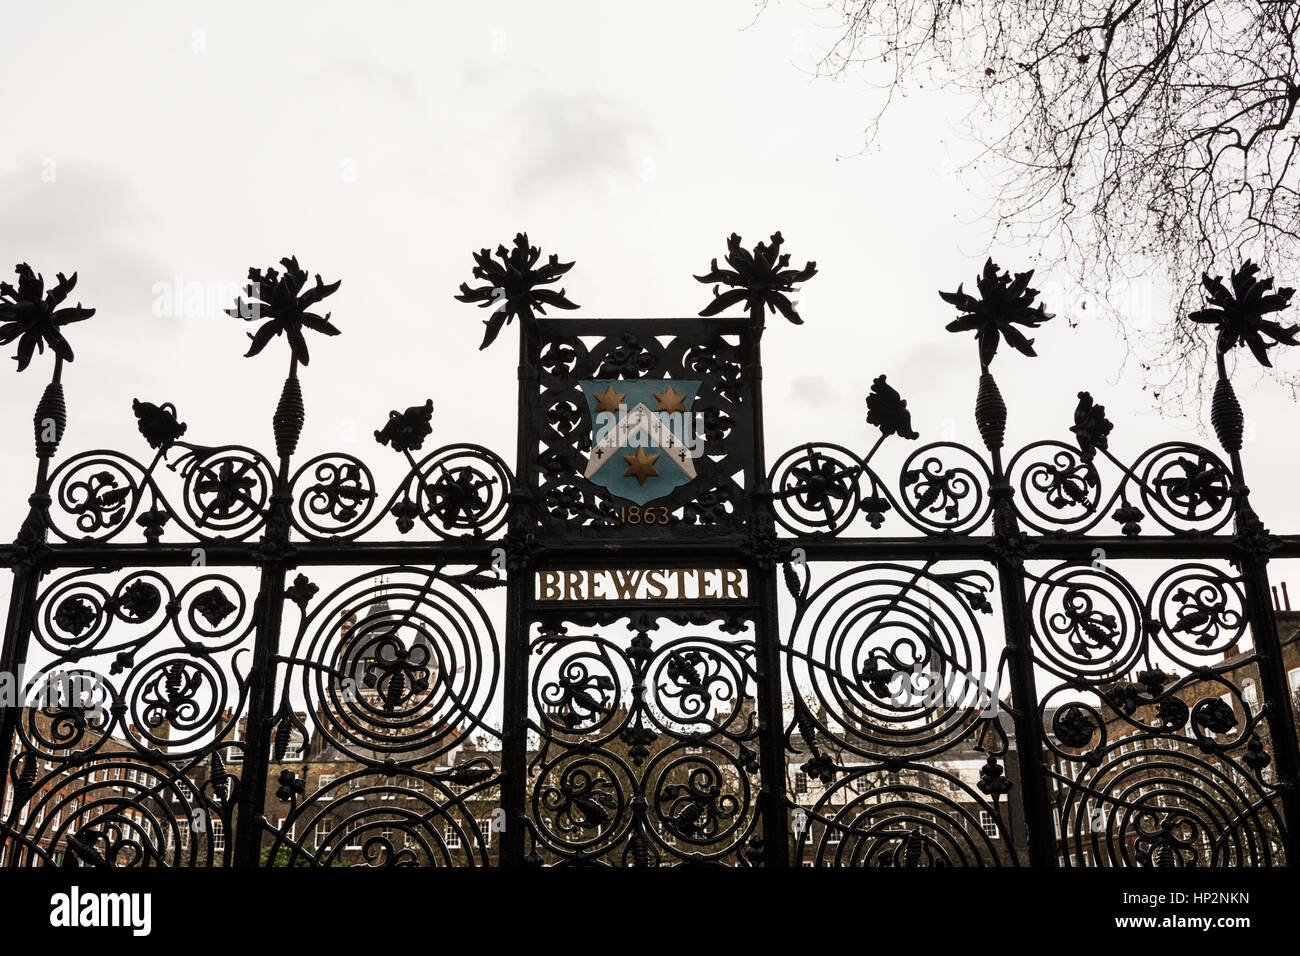 Railing in Lincoln's Inn, Holborn, London Borough of Camden, Greater London, England, United Kingdom - Stock Image